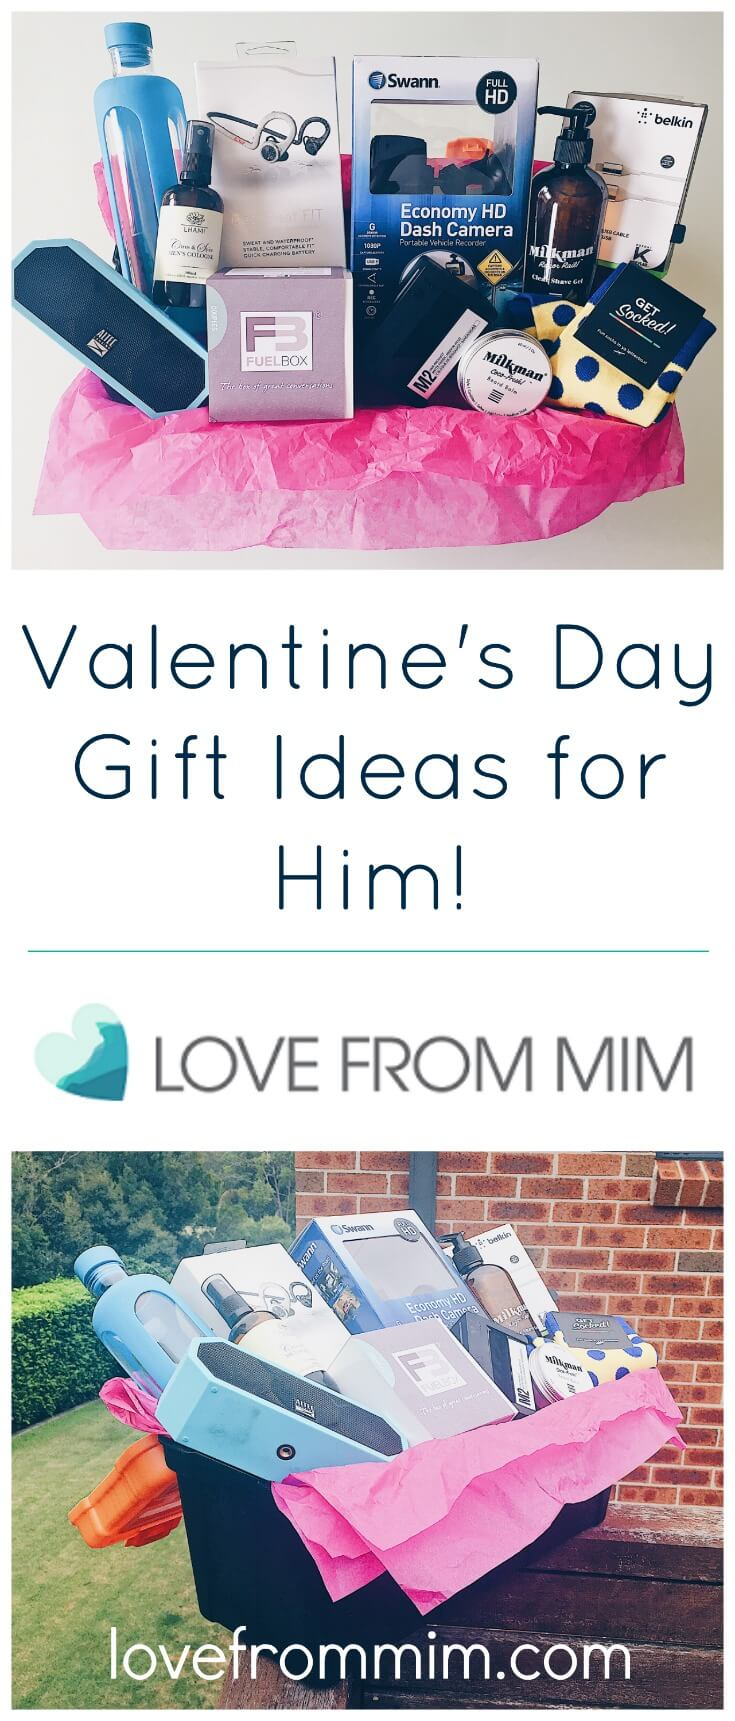 10 Valentine's Day Gift Ideas for Him - lovefrommim.com Love from Mim Valentine's Day, Valentine's Day Gift Guide, Gift Guide, Wish List, Men's Gifts, Male Gifts, Valentine's Day Gift Ideas for Him, What to buy your Husband for Valentine's Day, Hampers, Valentine's Day Hamper What to buy husband for Valentine's Day